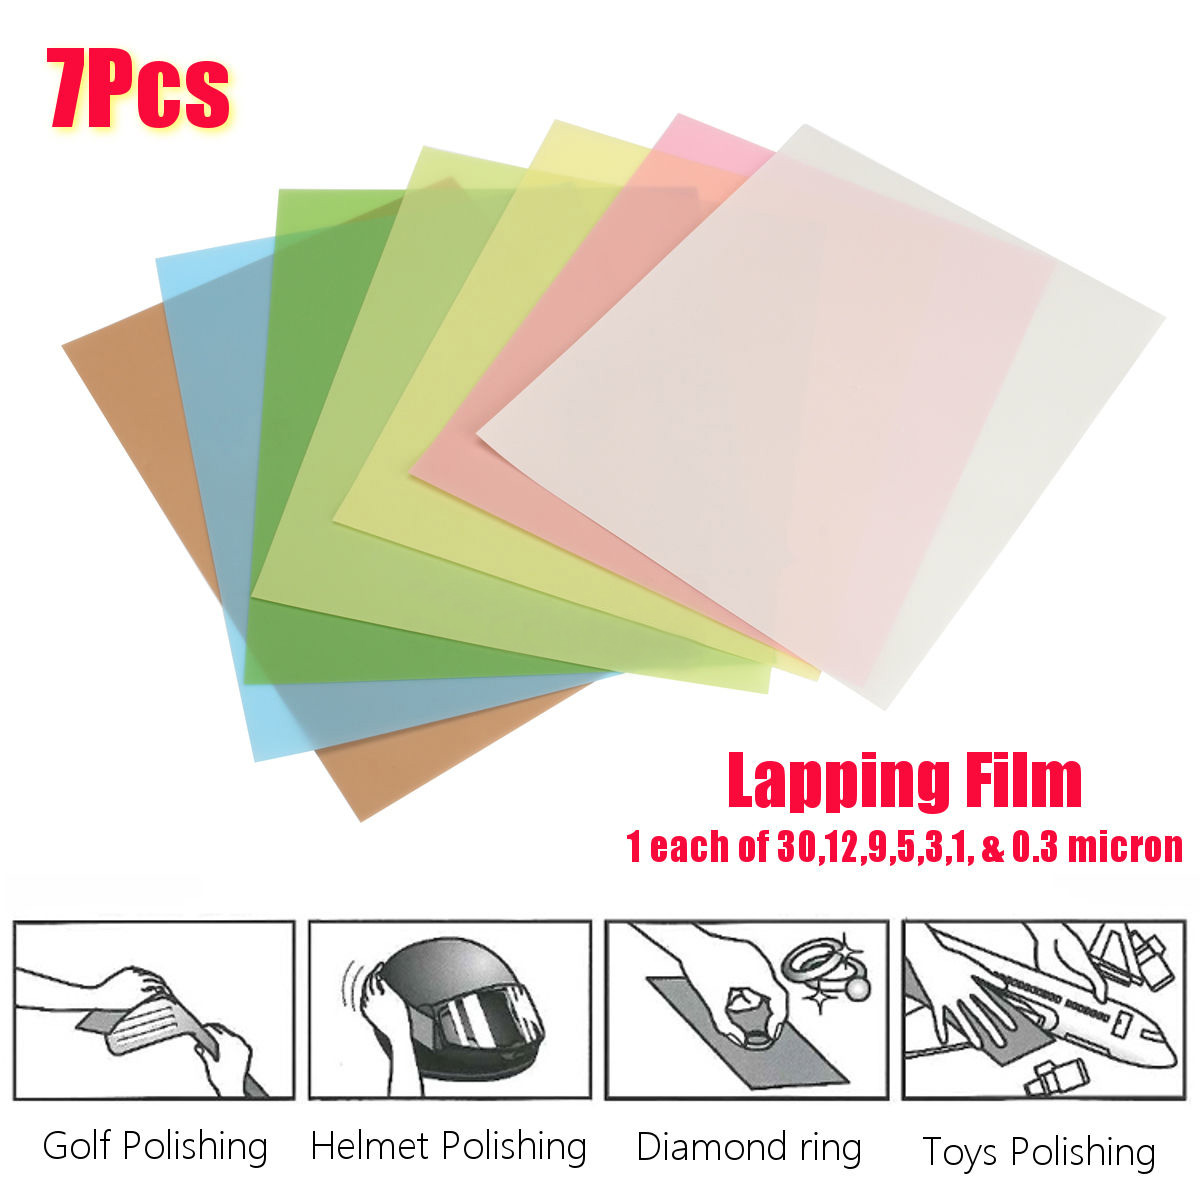 7PCS 8.7'' X 11'' Lapping Film Sheets 1 Each Of 30,12,9,5,3,1, & 0.3 Upport Wholesale Tools Parts